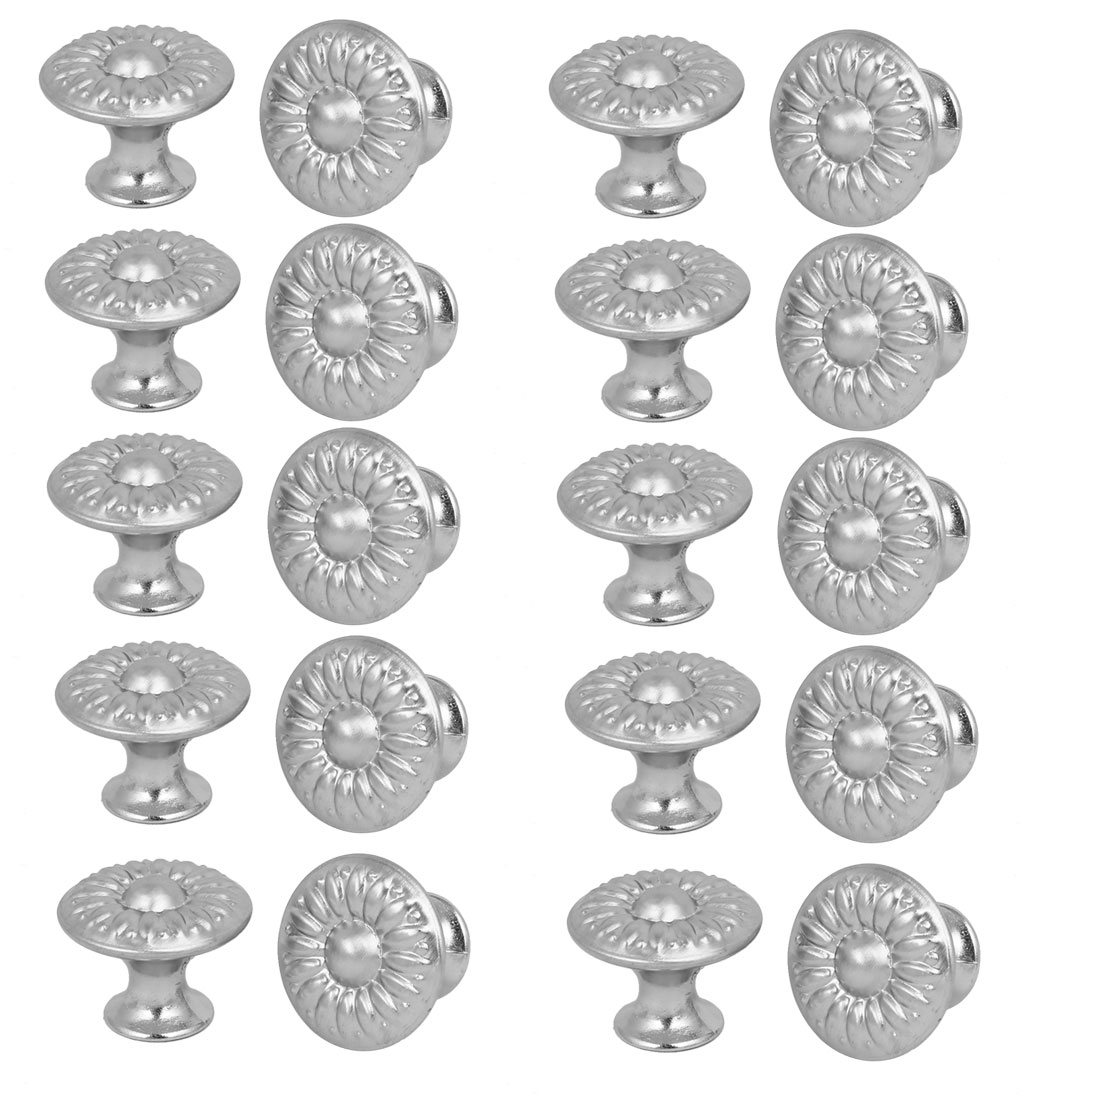 Cabinet Drawer Single Hole Flower Pattern Pull Knobs Silver Tone 27mmx22mm 20pcs